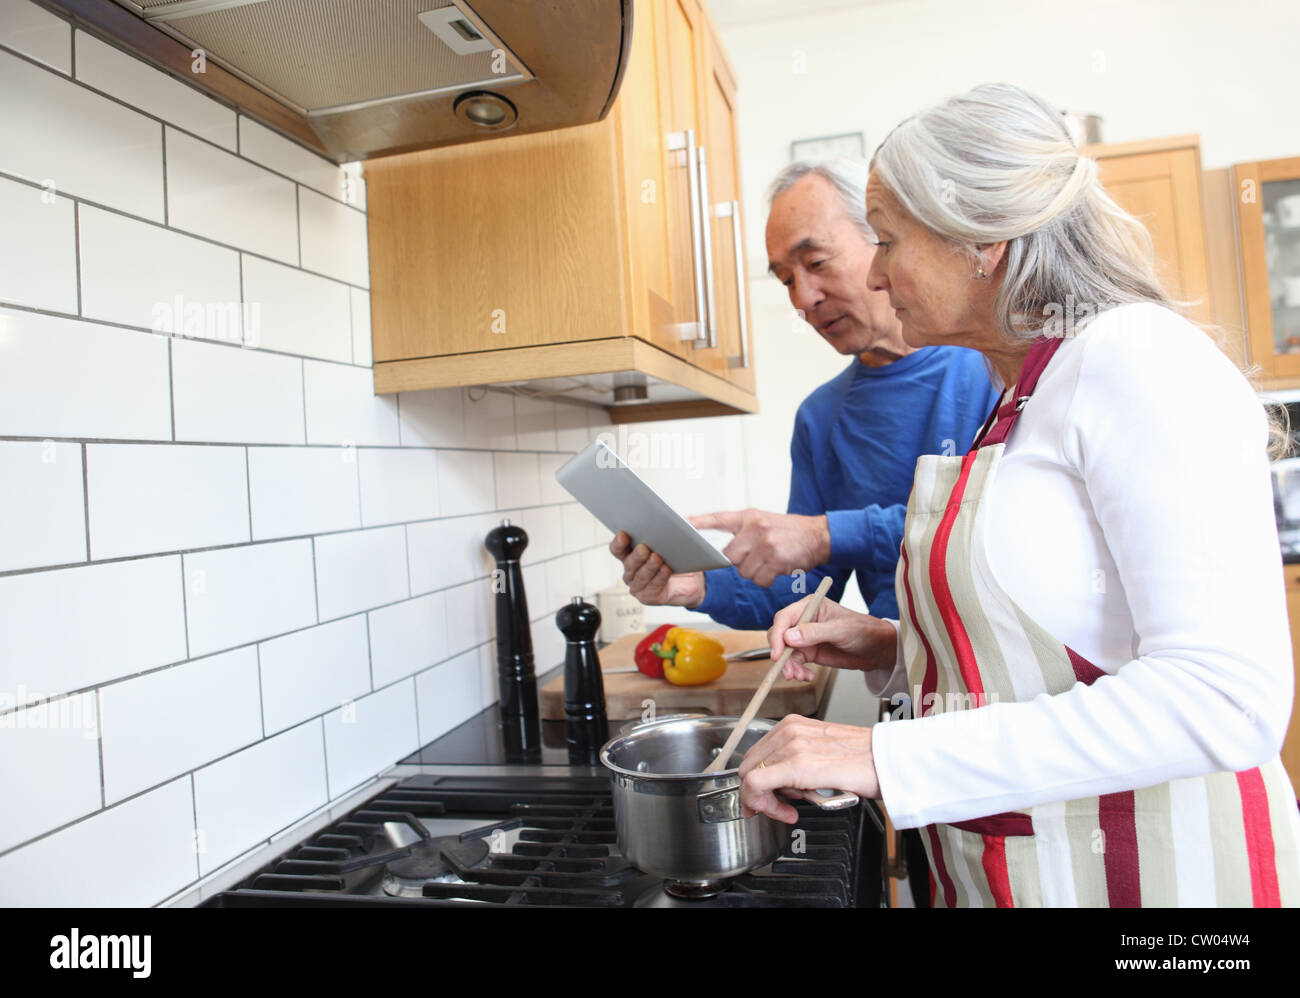 Older couple cooking together in kitchen - Stock Image